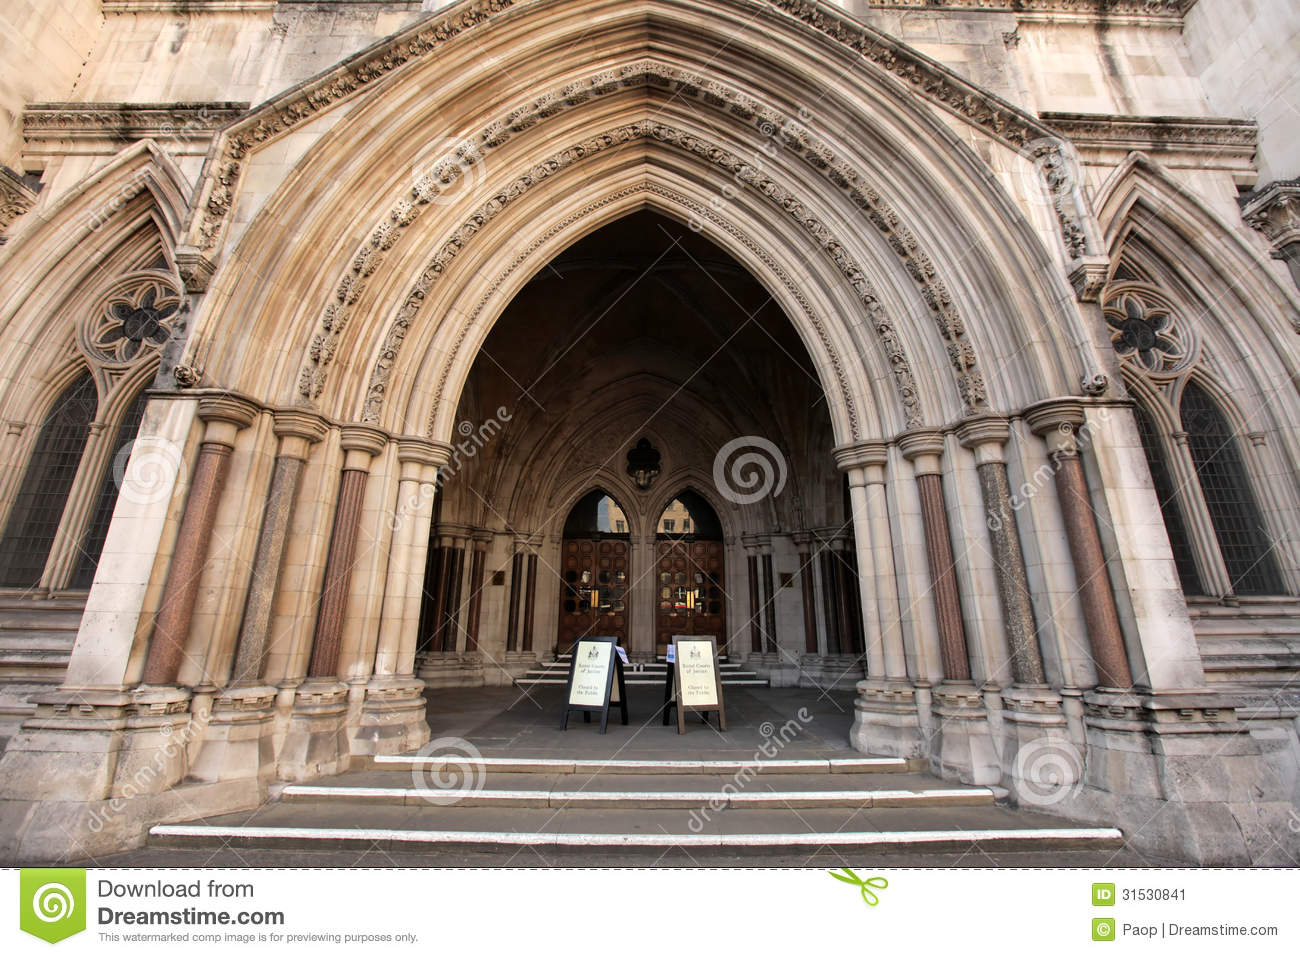 Entrance to the Royal Court of Justice